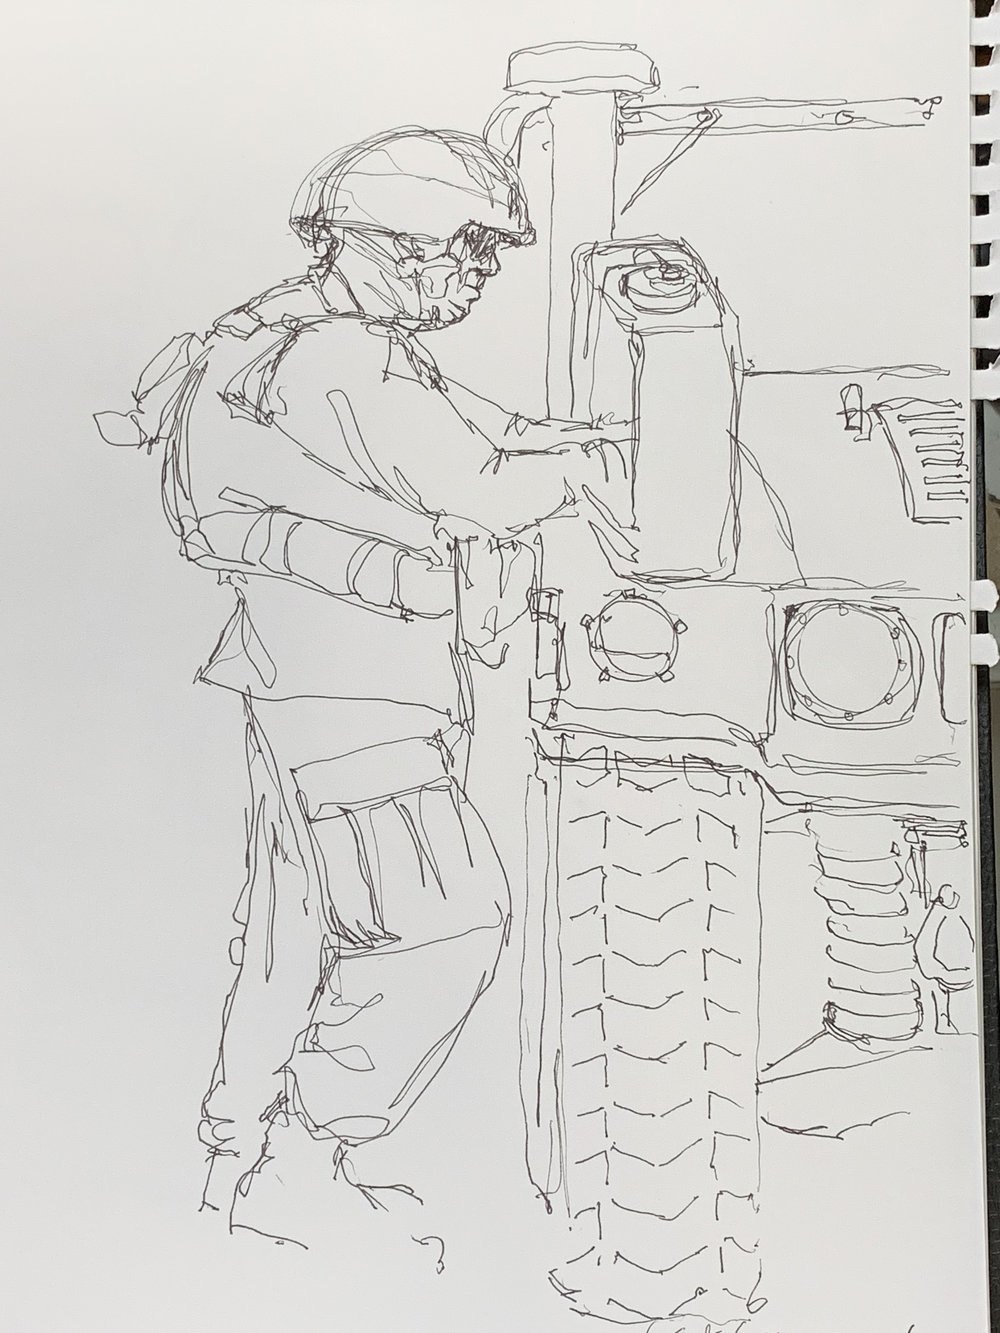 Gunnery Sergeant Guerra Charlie Battery 1/11 outside Fire Direction Control Tent working out a plan on the hood of a Humvee